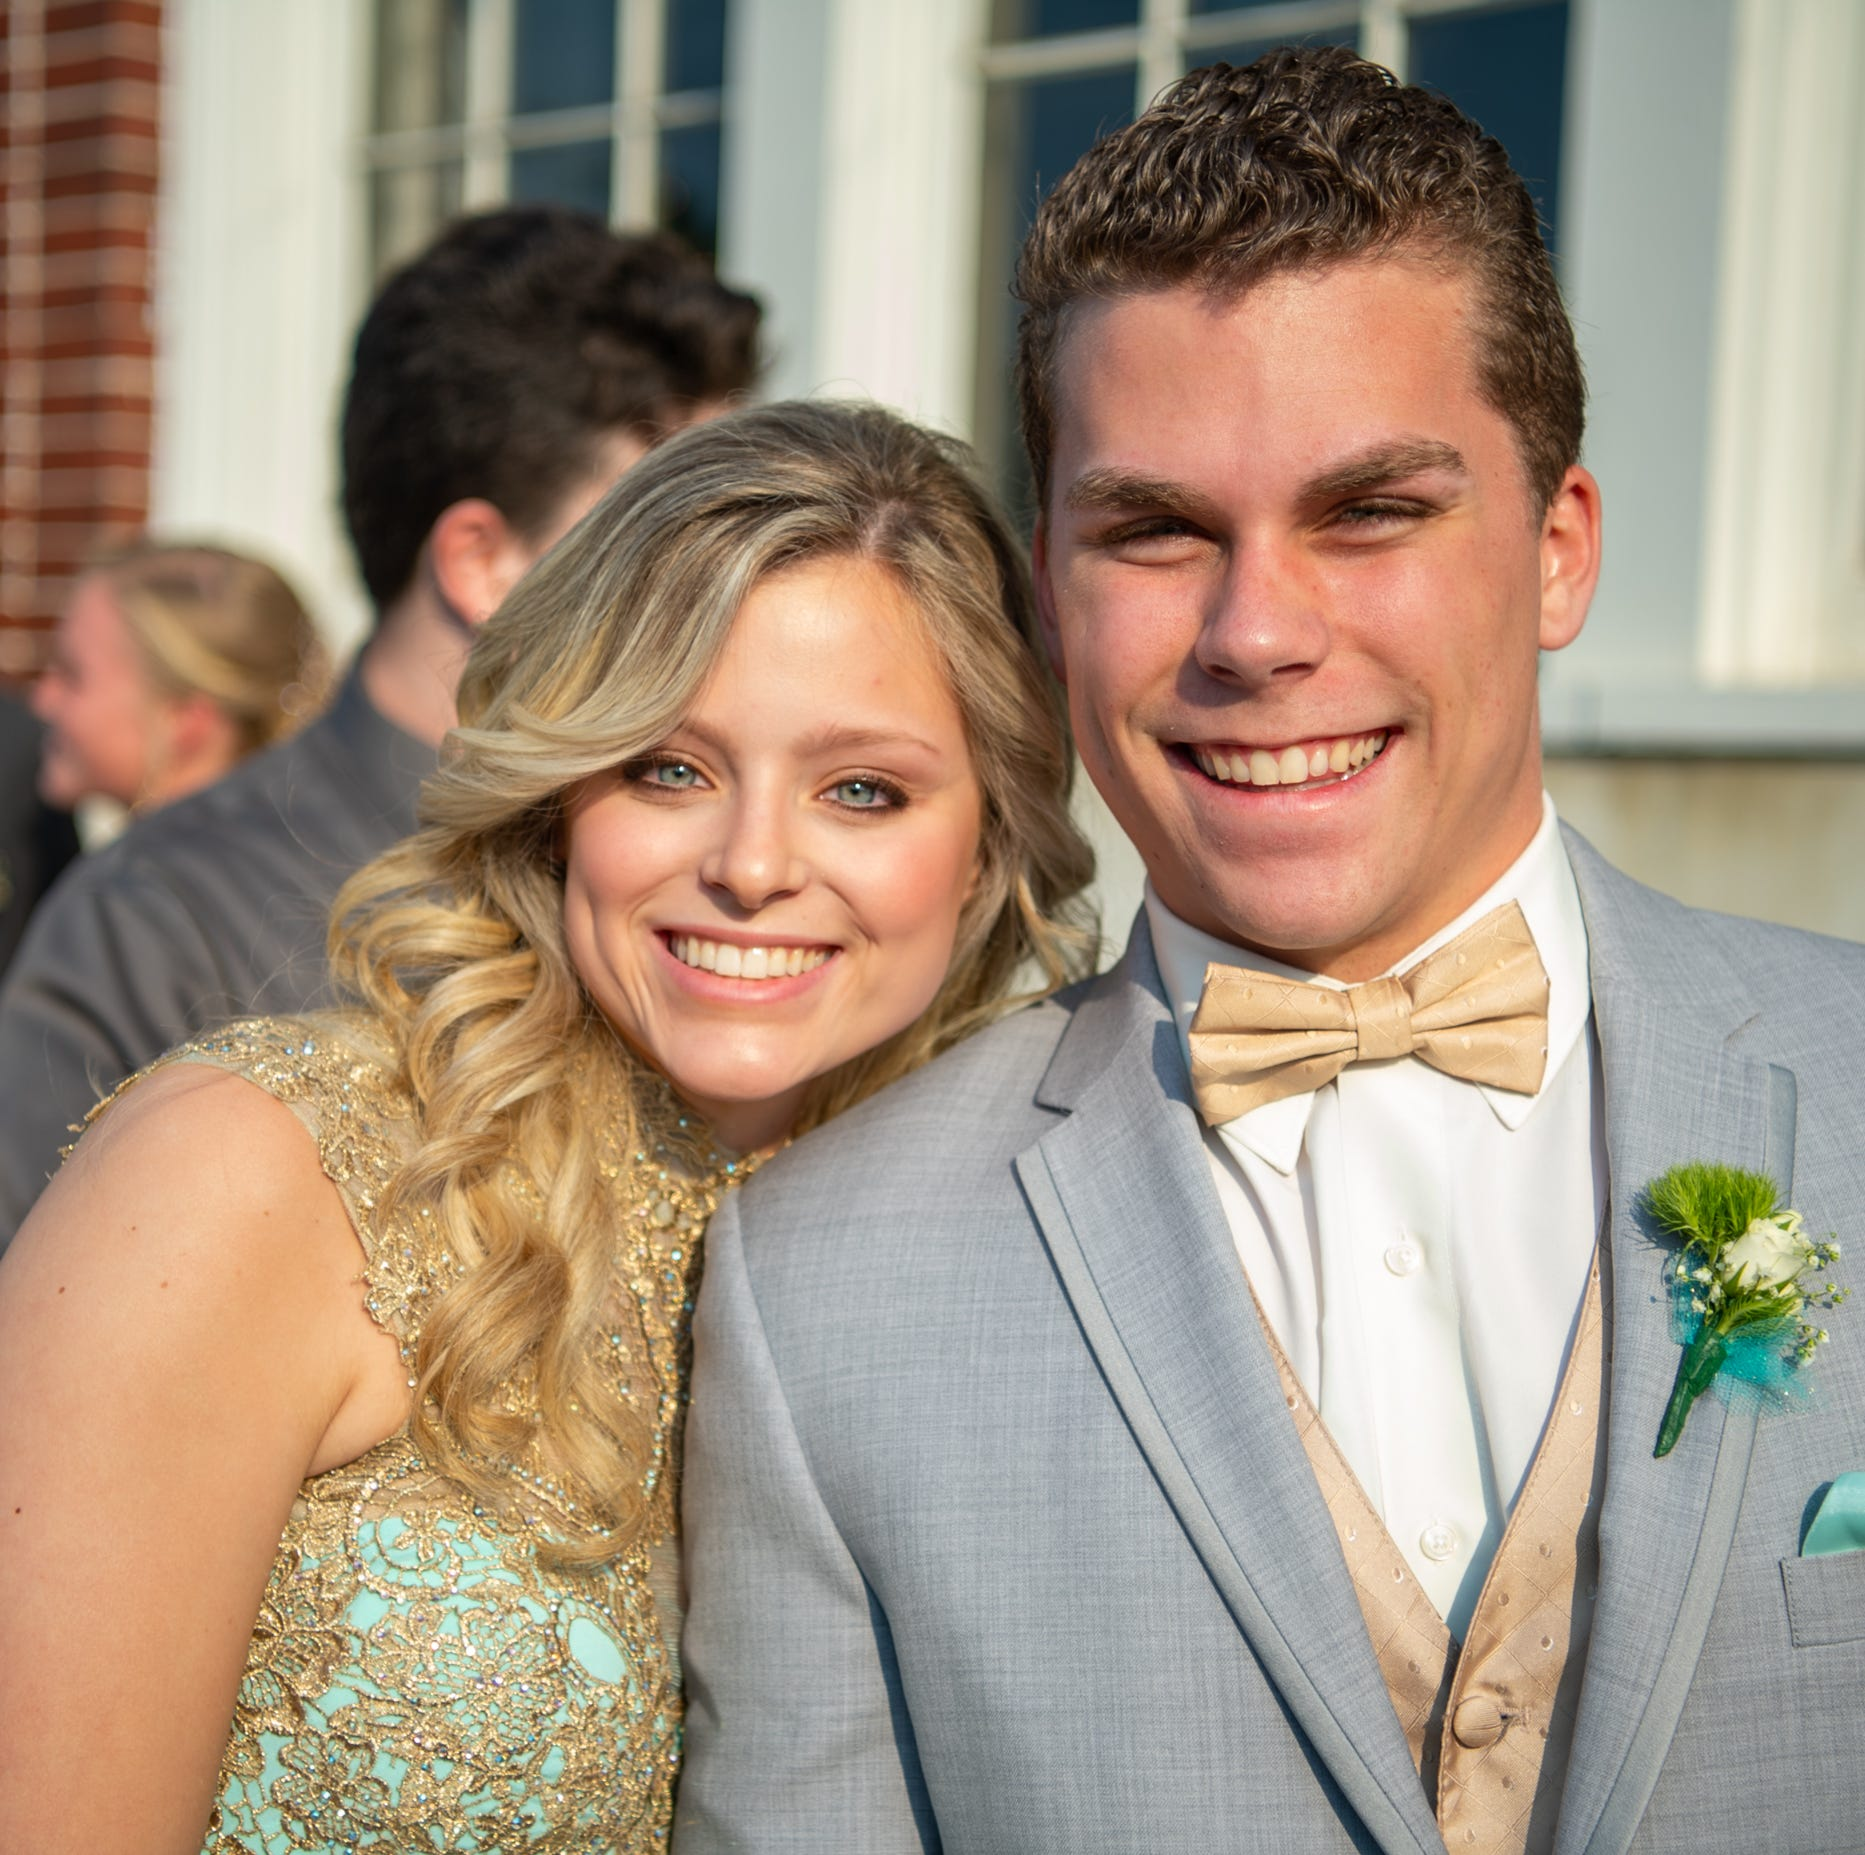 PHOTOS: Red Lion Area High students celebrate prom at The Bond